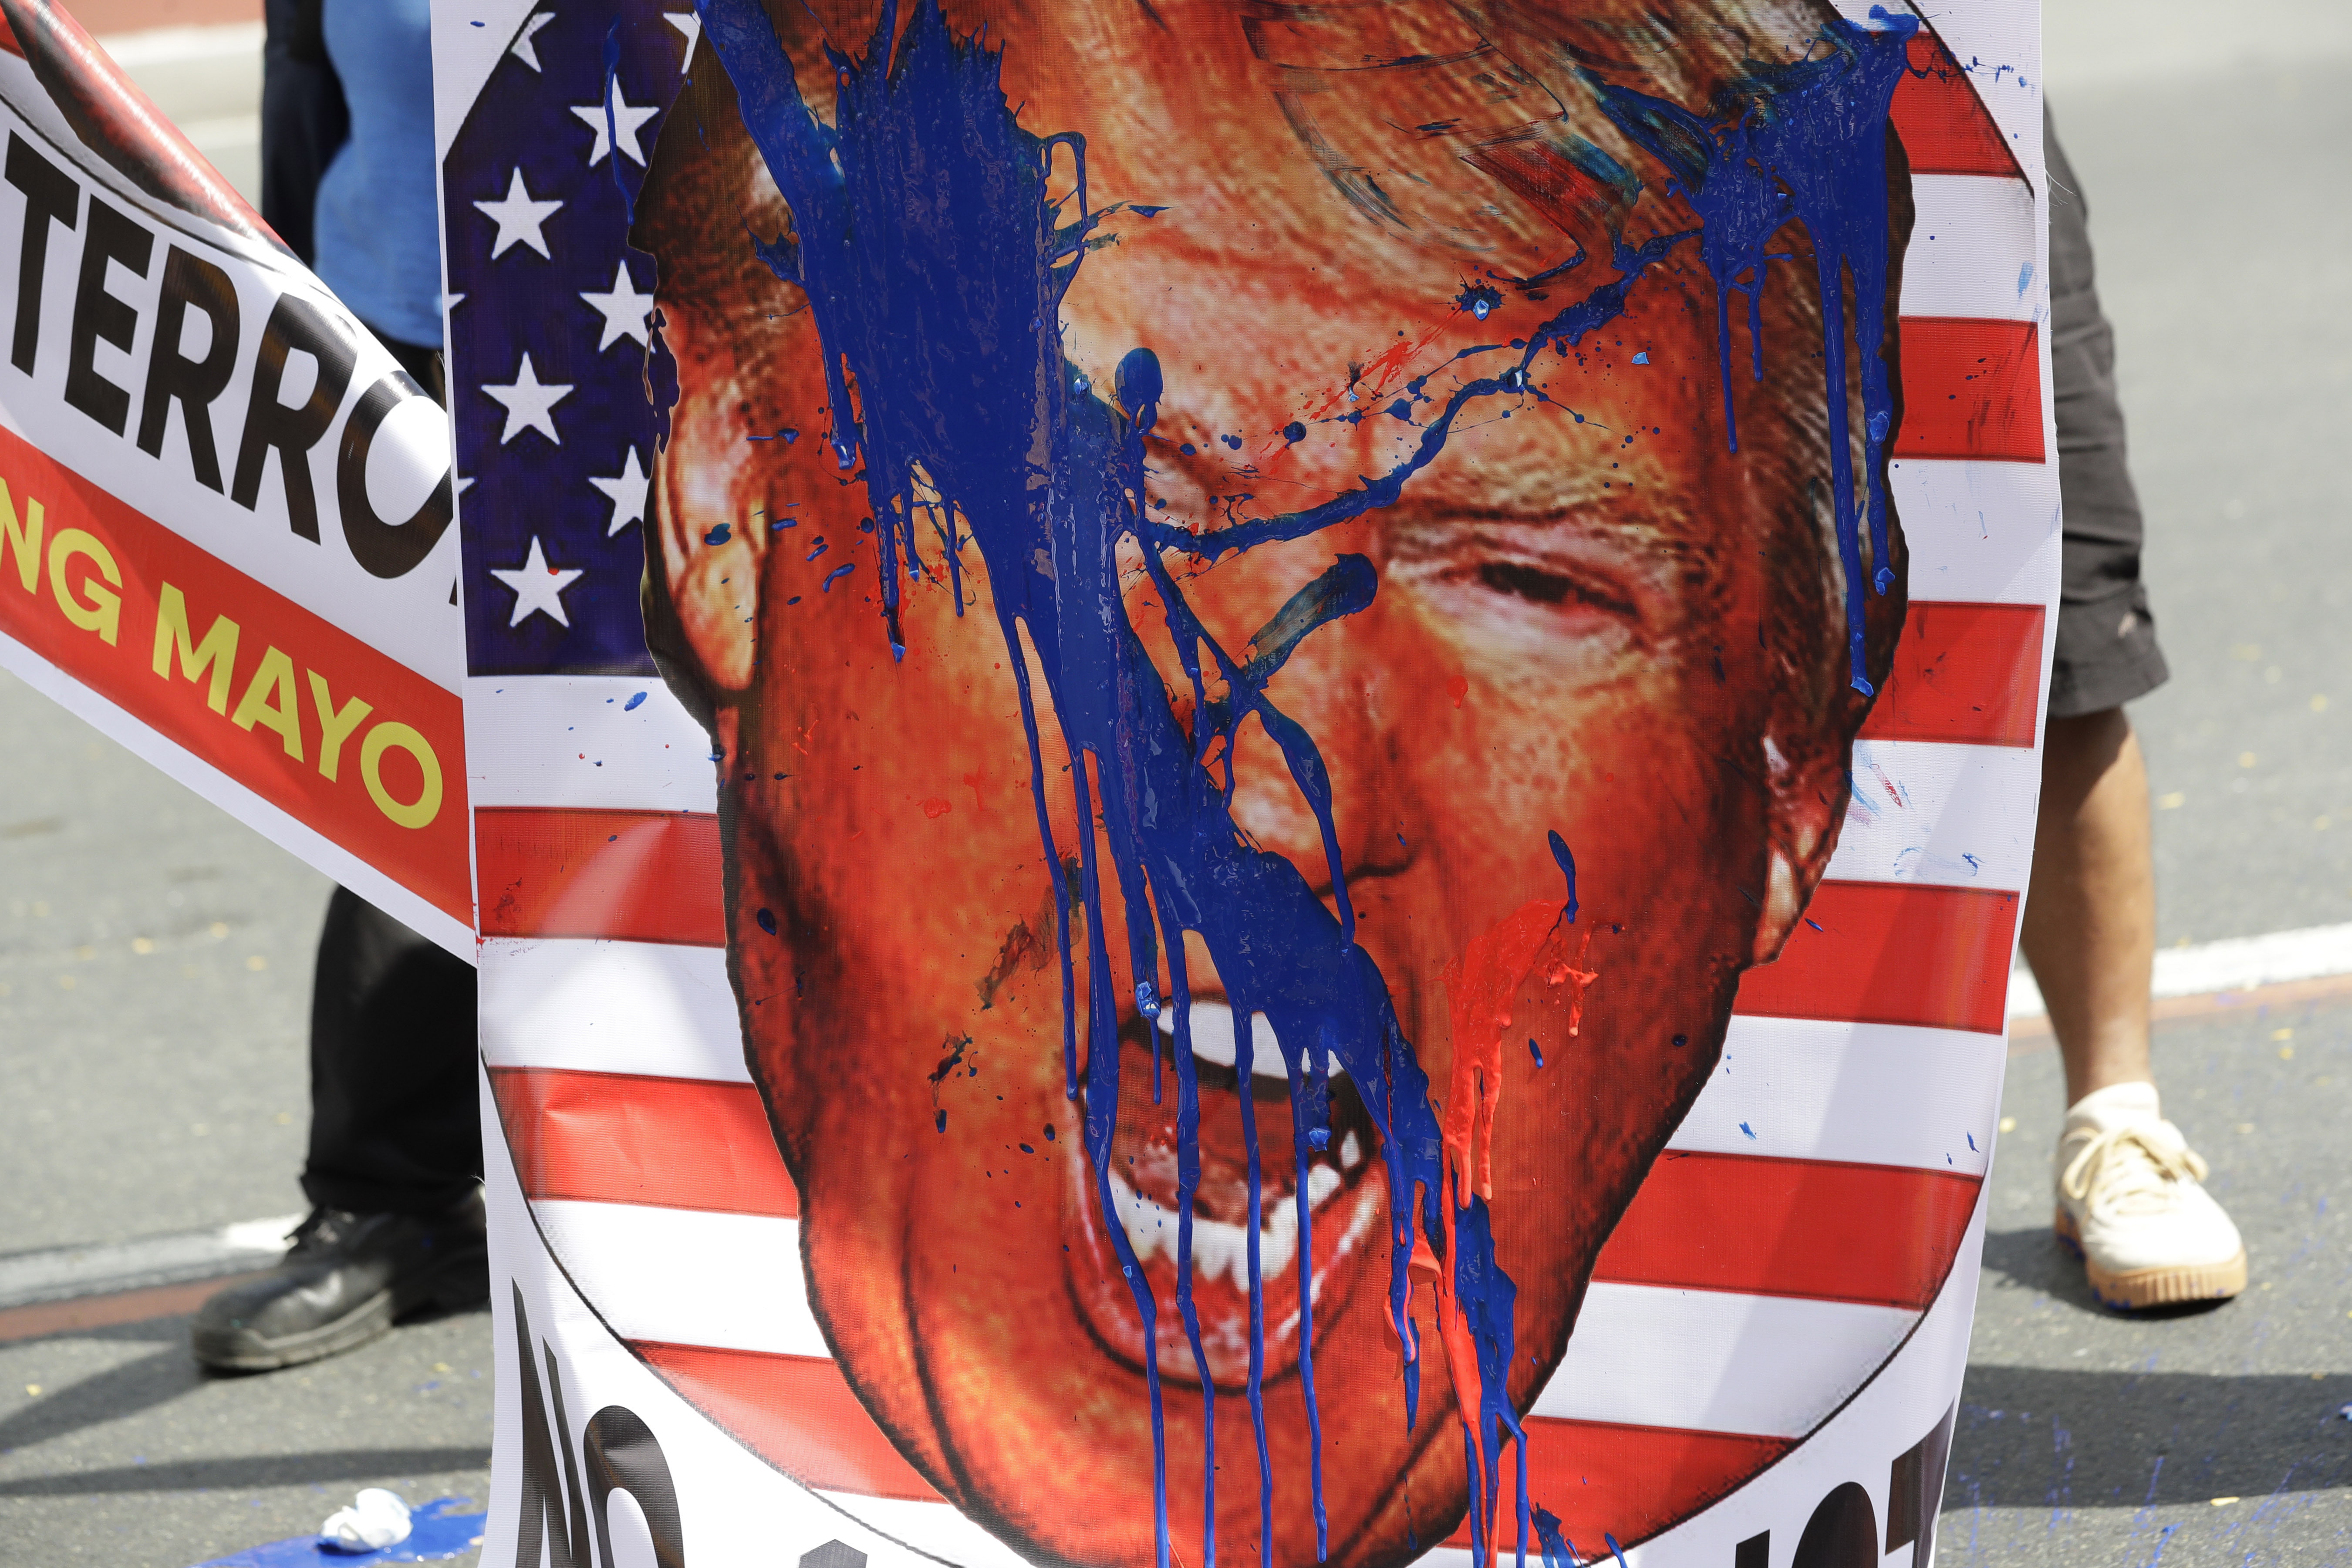 An image of U.S. President Donald Trump is splashed with paint by protesters as they hold a rally opposing the recent attack of the U.S. against Iran, where it killed Gen. Qassem Soleimani, near the U.S. Embassy in Manila, Philippines, Monday, Jan. 6, 2020. Philippine President Rodrigo Duterte ordered the military to prepare to deploy its aircraft and ships